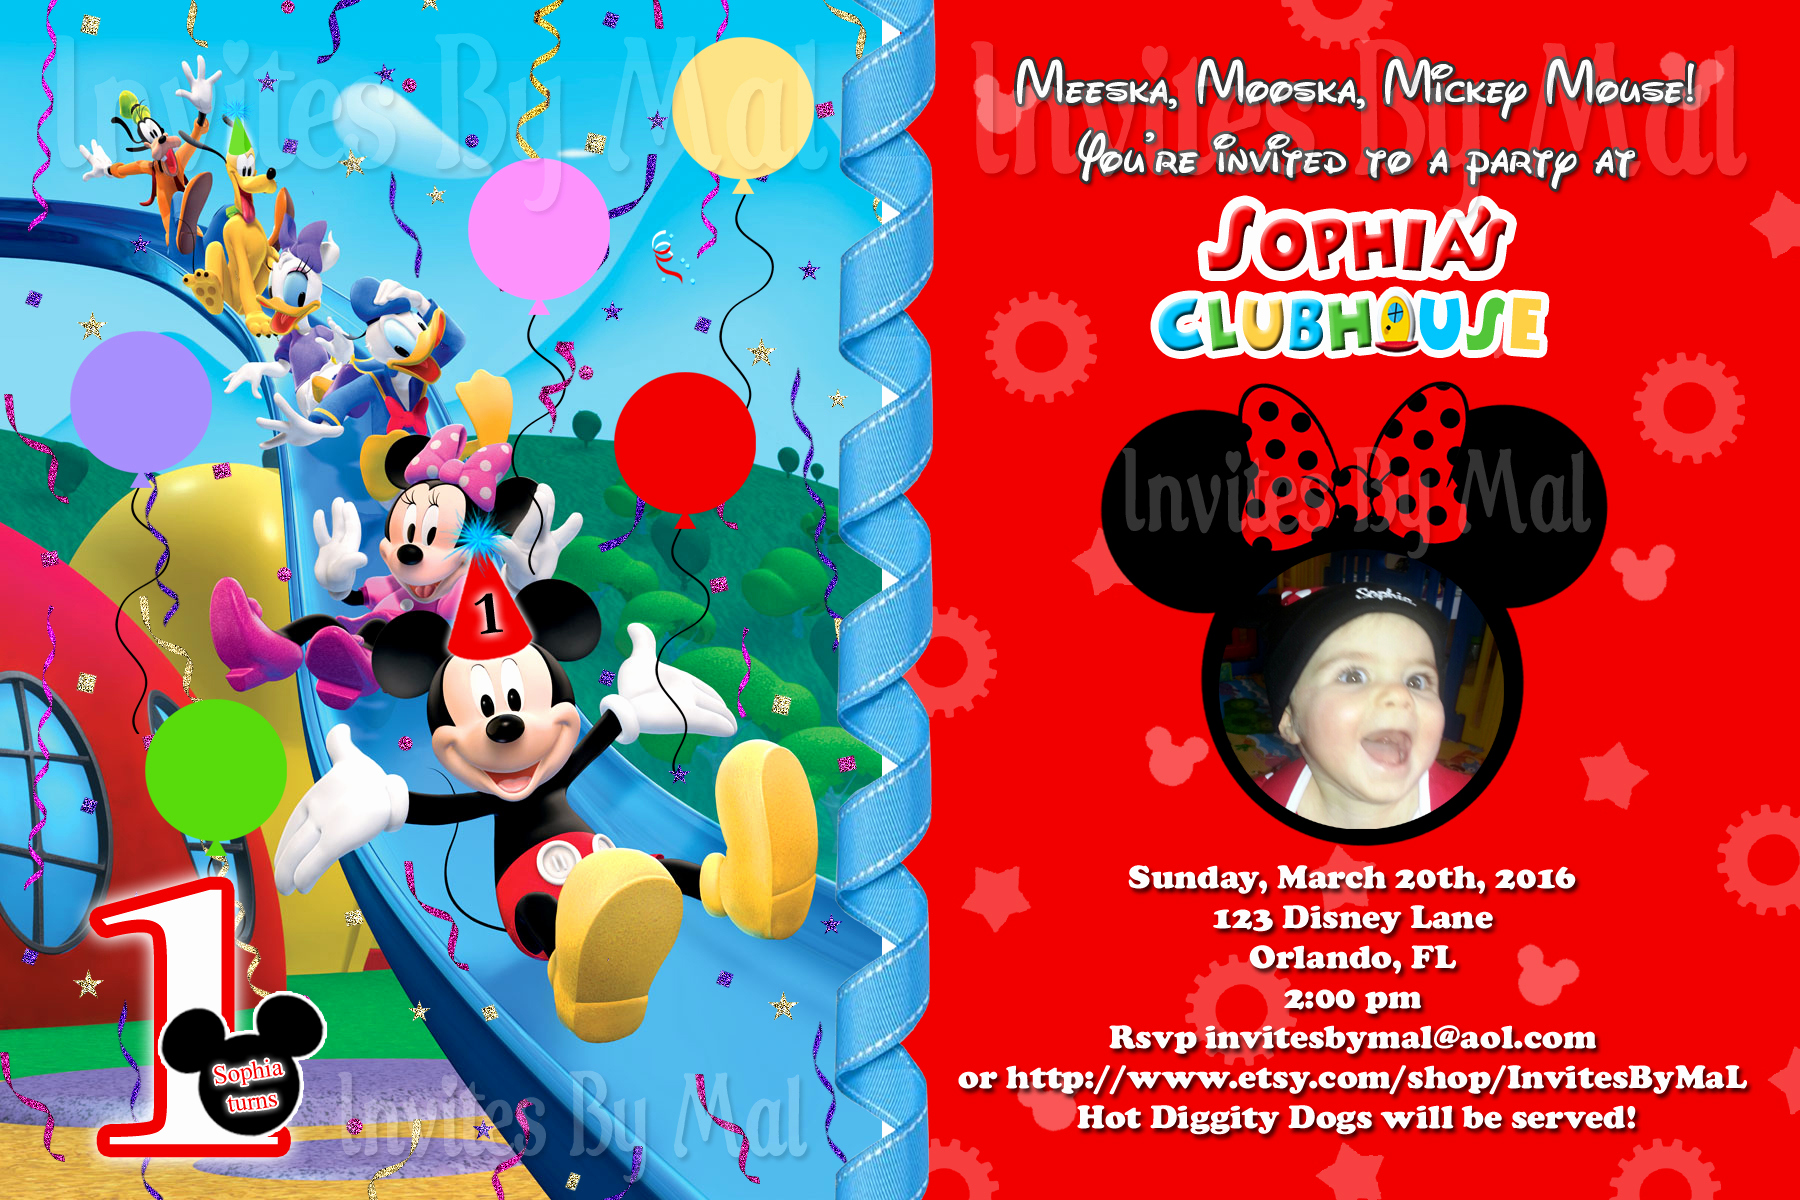 Mickey Mouse Clubhouse Invitation Templates Lovely Mickey Mouse Clubhouse Invitations for Special Birthday Party